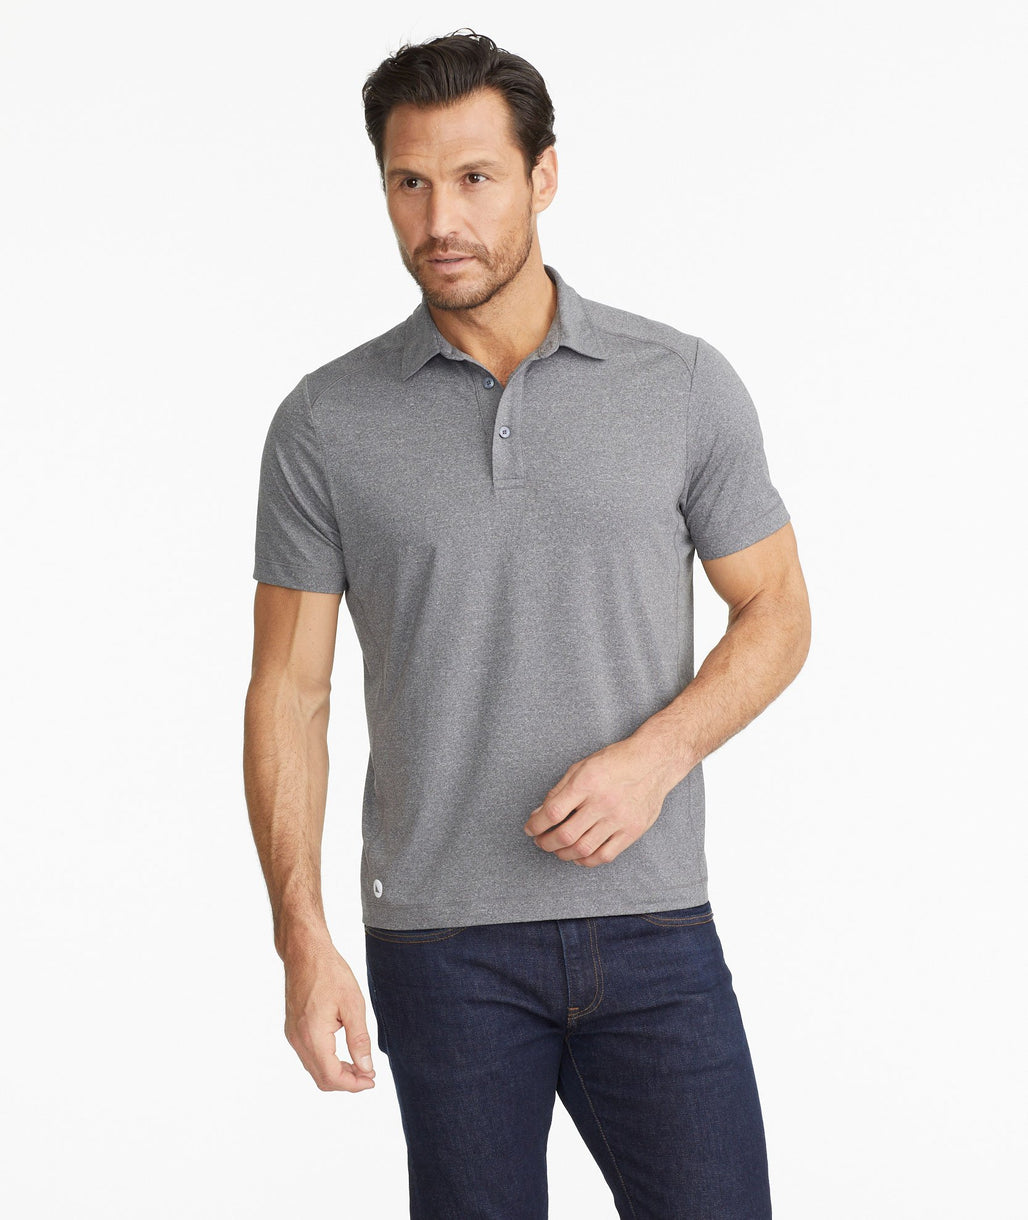 Model wearing a Grey The Performance Polo